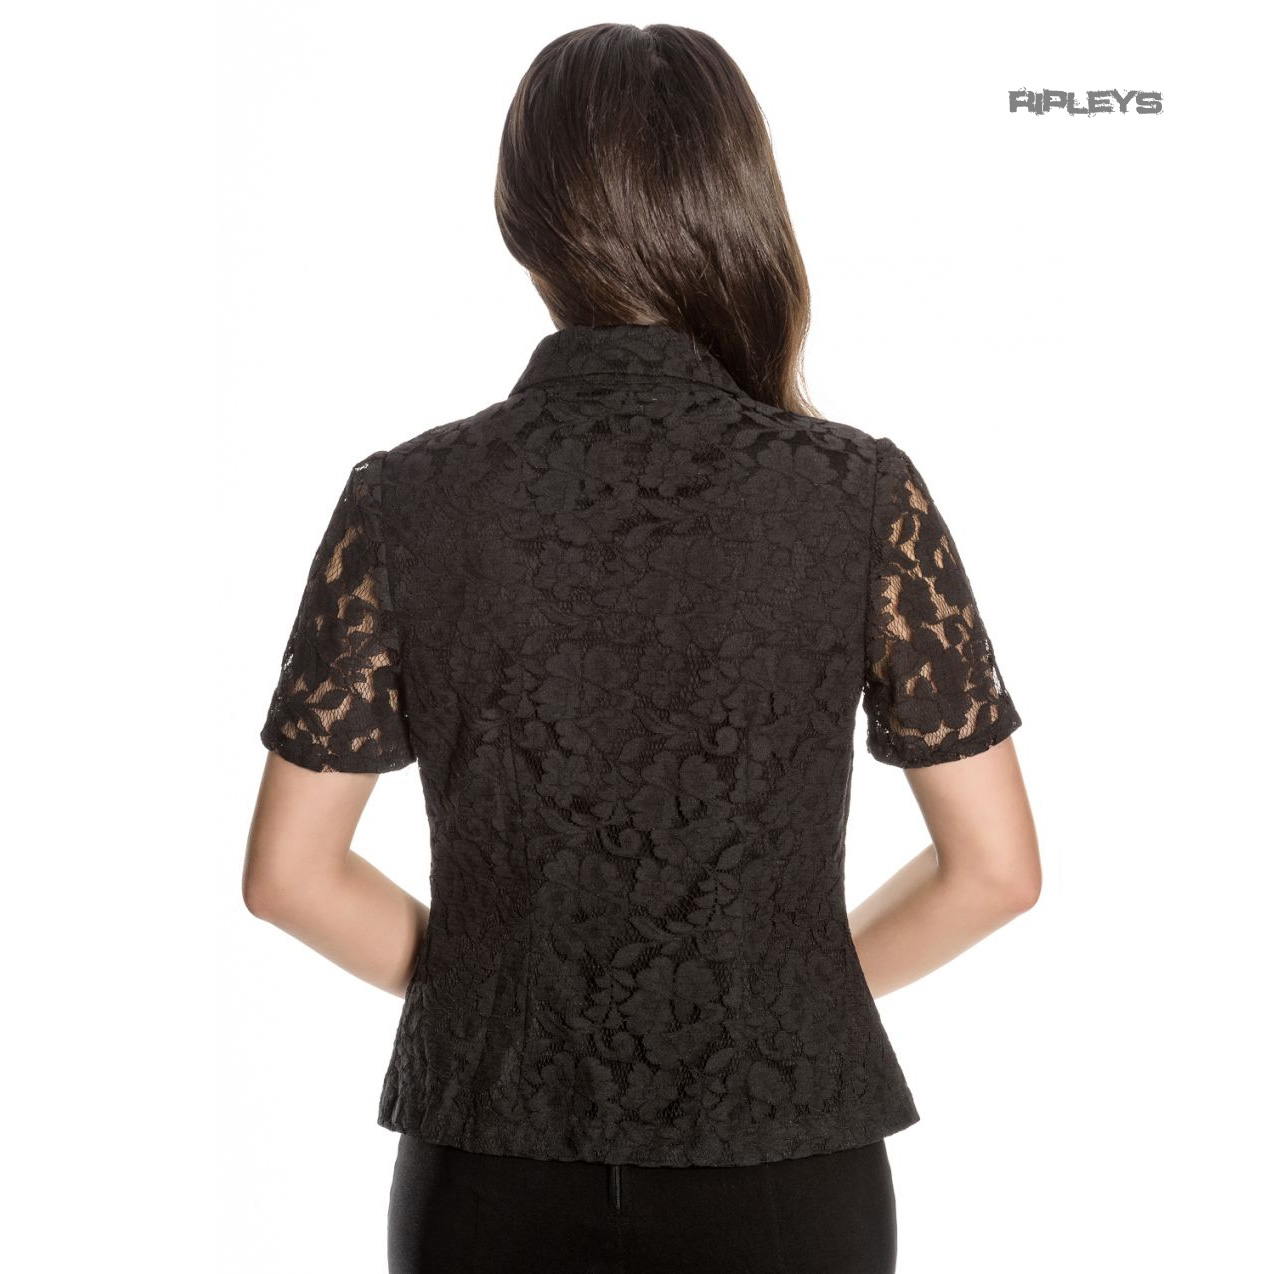 Hell-Bunny-Spin-Doctor-Vampire-Gothic-Shirt-Top-ROWENA-Lace-Blouse-All-Sizes Indexbild 16